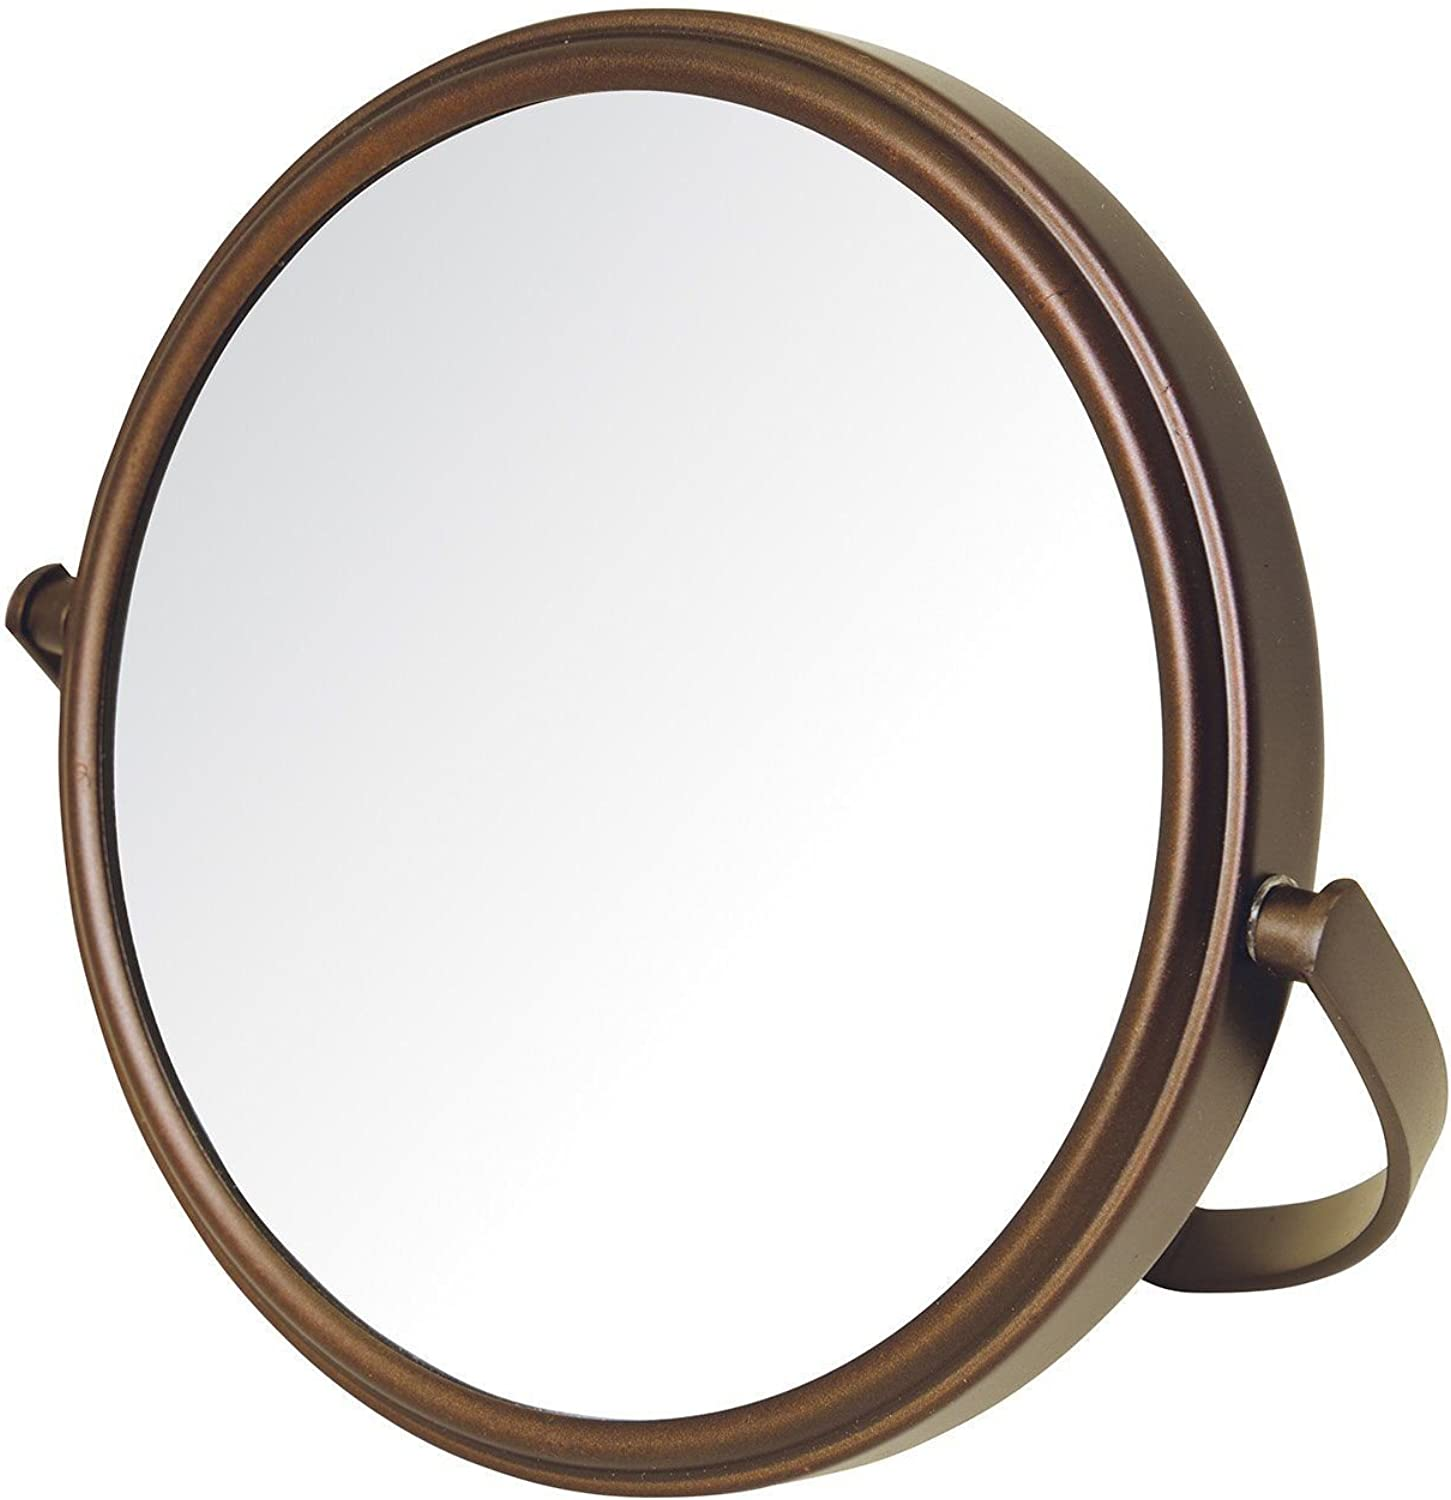 Makeup Mirror, Dual-Sided 5X 1X Magnification Table Top, Bronze L 6.7 x W 6.6 x H 1.1 inches